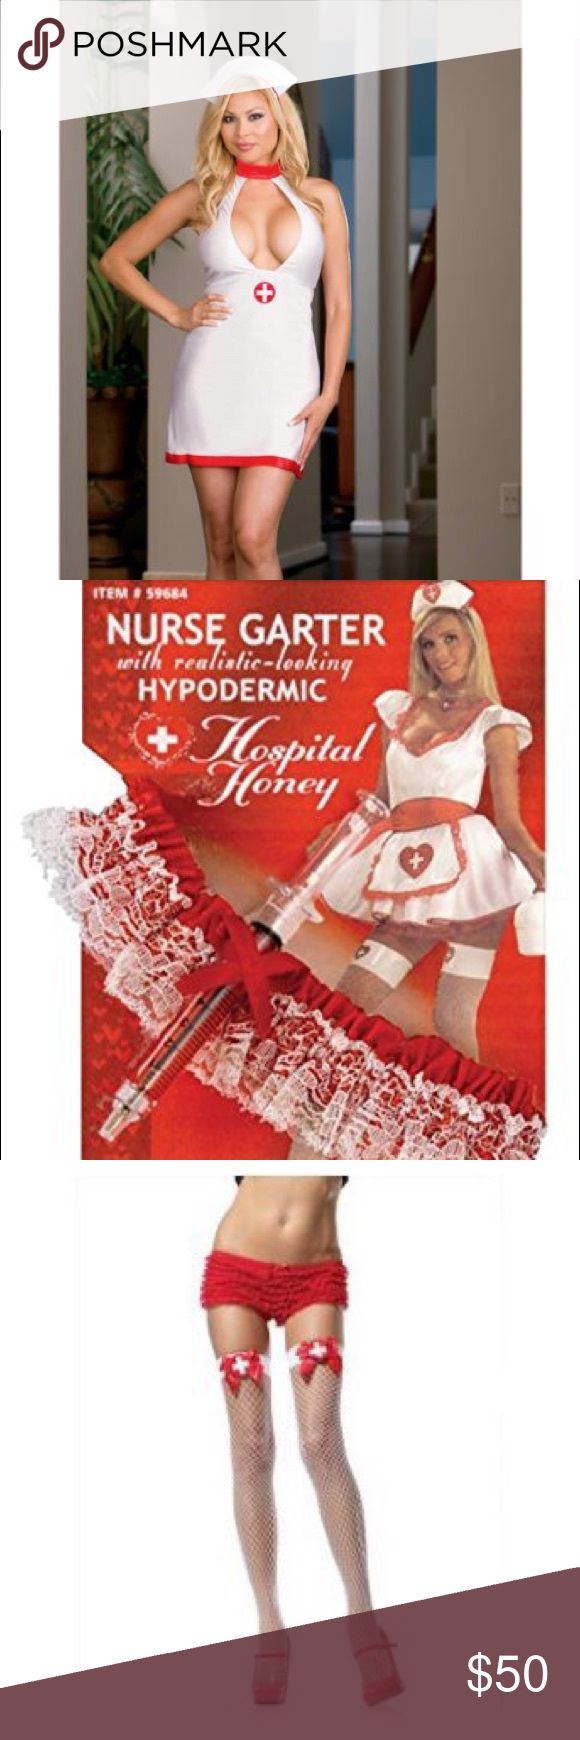 New Sexy Bedroom Nurse Role Play Costume + EXTRAS! Brand new role play or Halloween costume Bedroom Nurse in size One Size Fits Most Queen. This also comes with Nurse Honey accessories of thigh high fishnets in one size fits most up to 160 lbs, choker, garter belt and clipboard. I have lots of wigs you could use to complete your outfit! Check out my other listings for more costumes, wigs and accessories! Dreamgirl Other